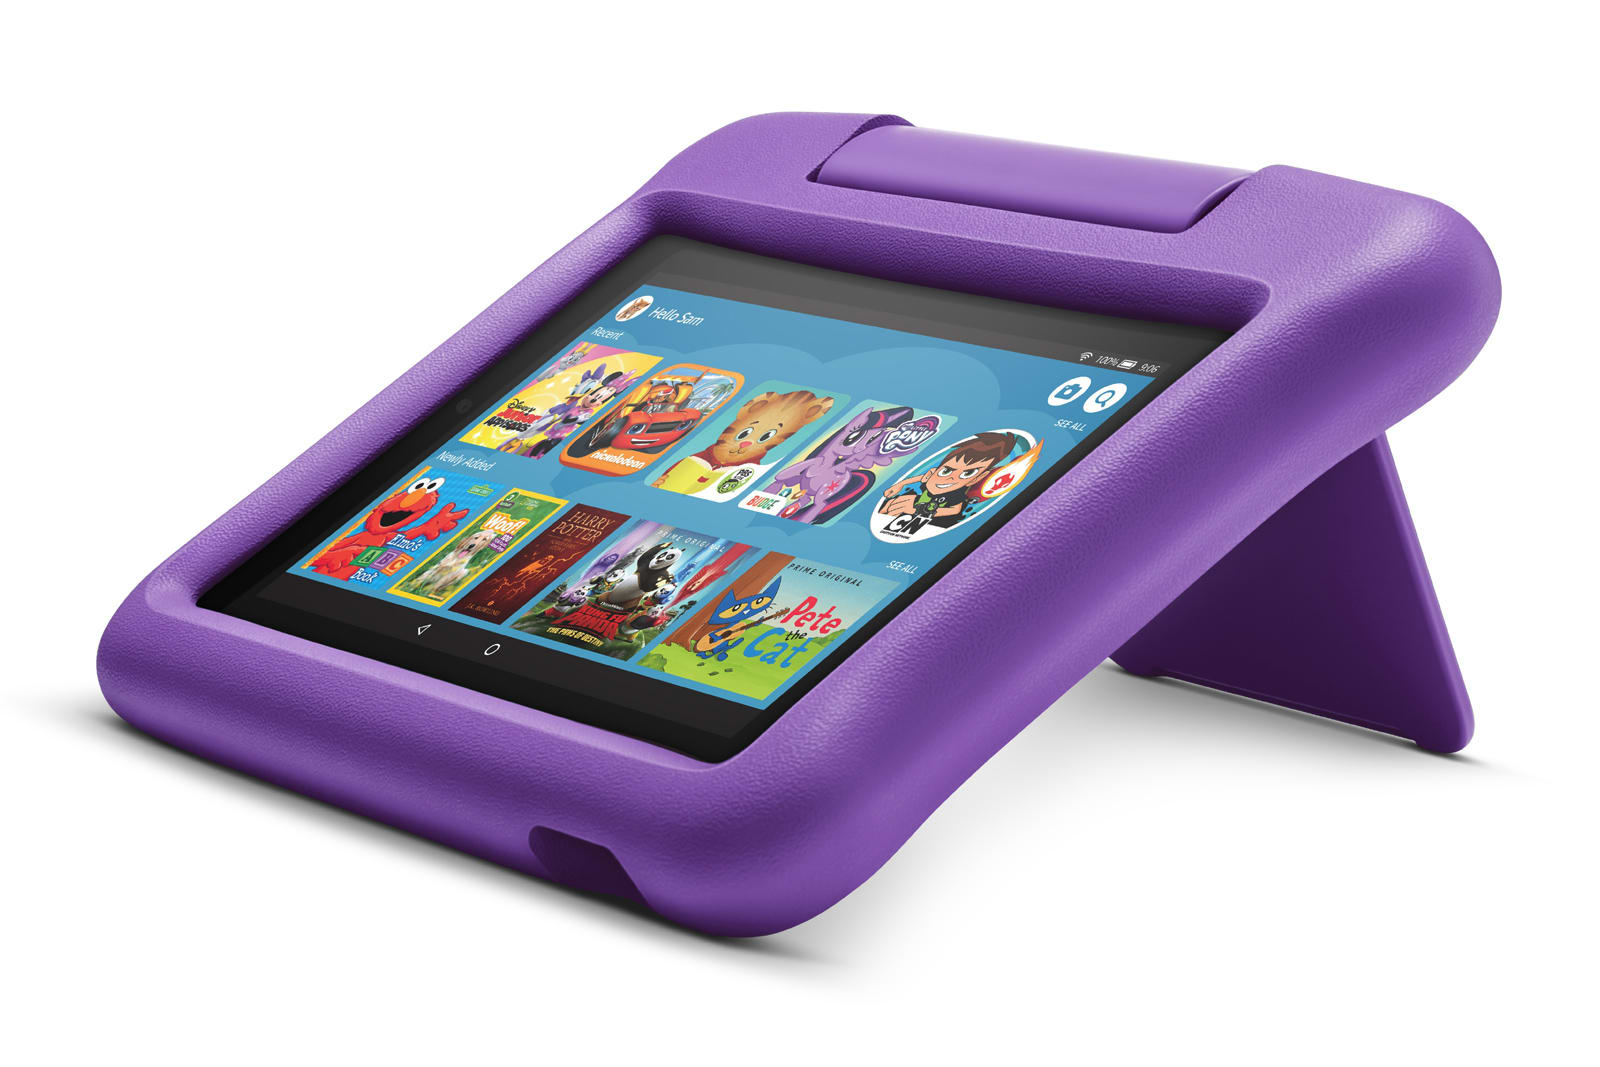 Amazon Fire 7 Kids Edition (2019)